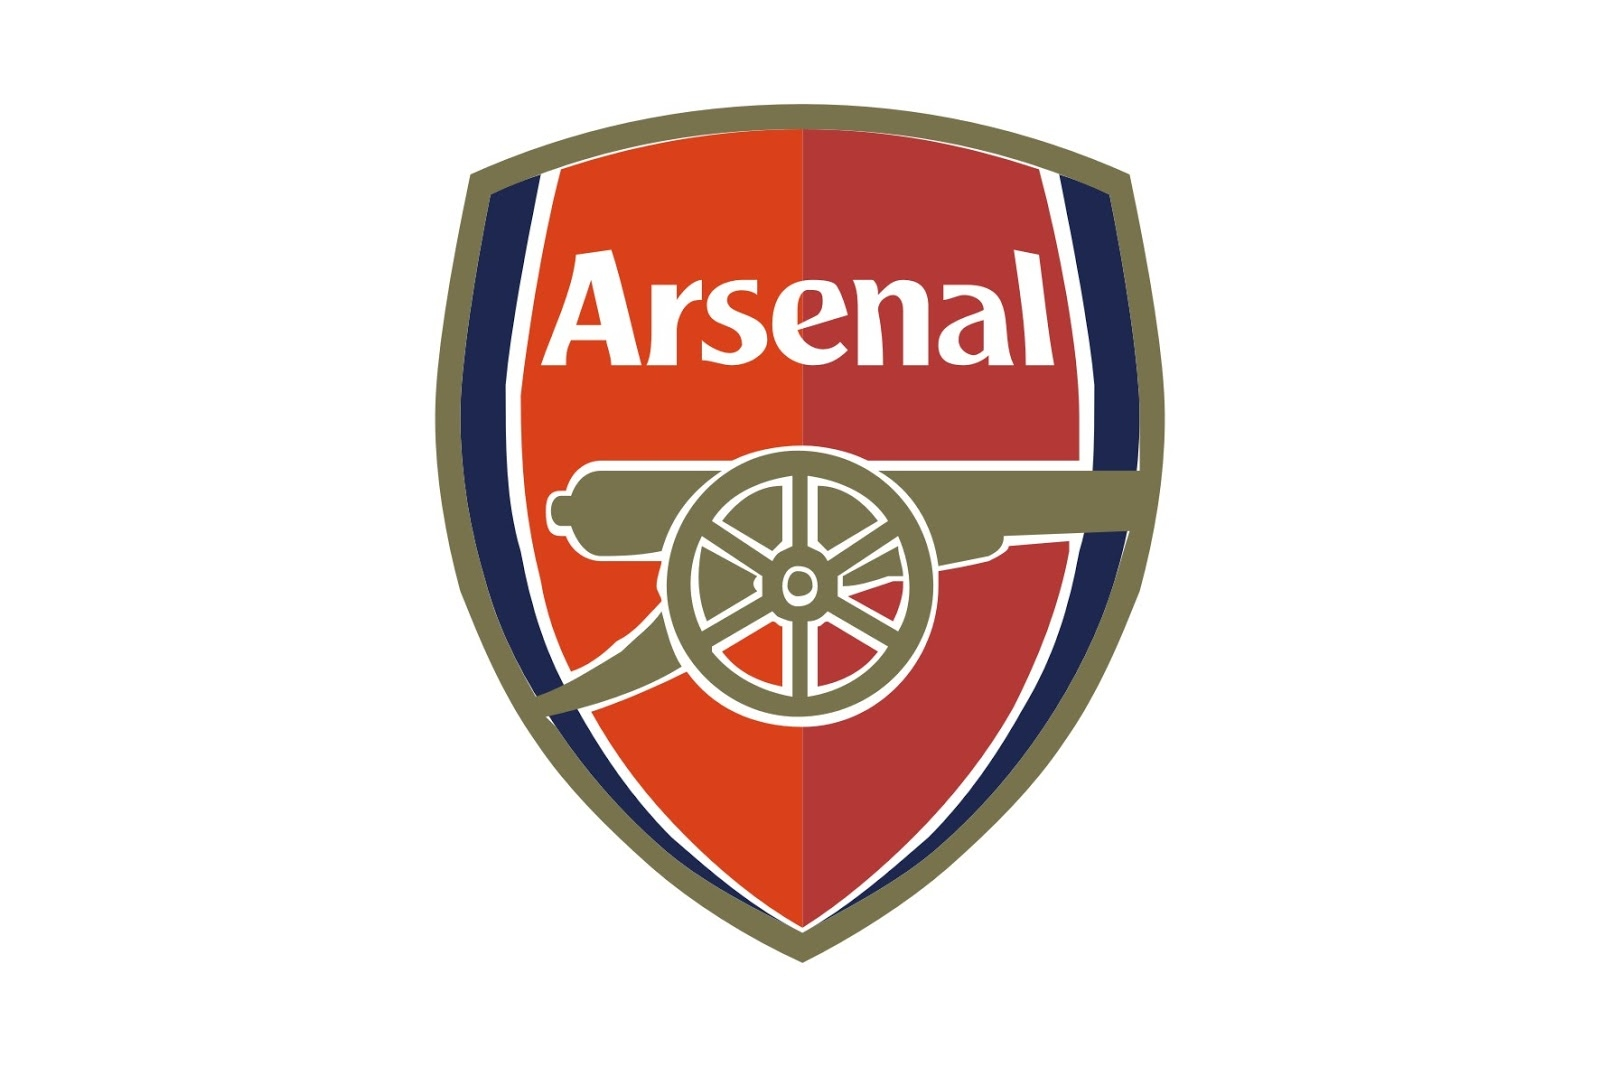 Arsenal Clipart.